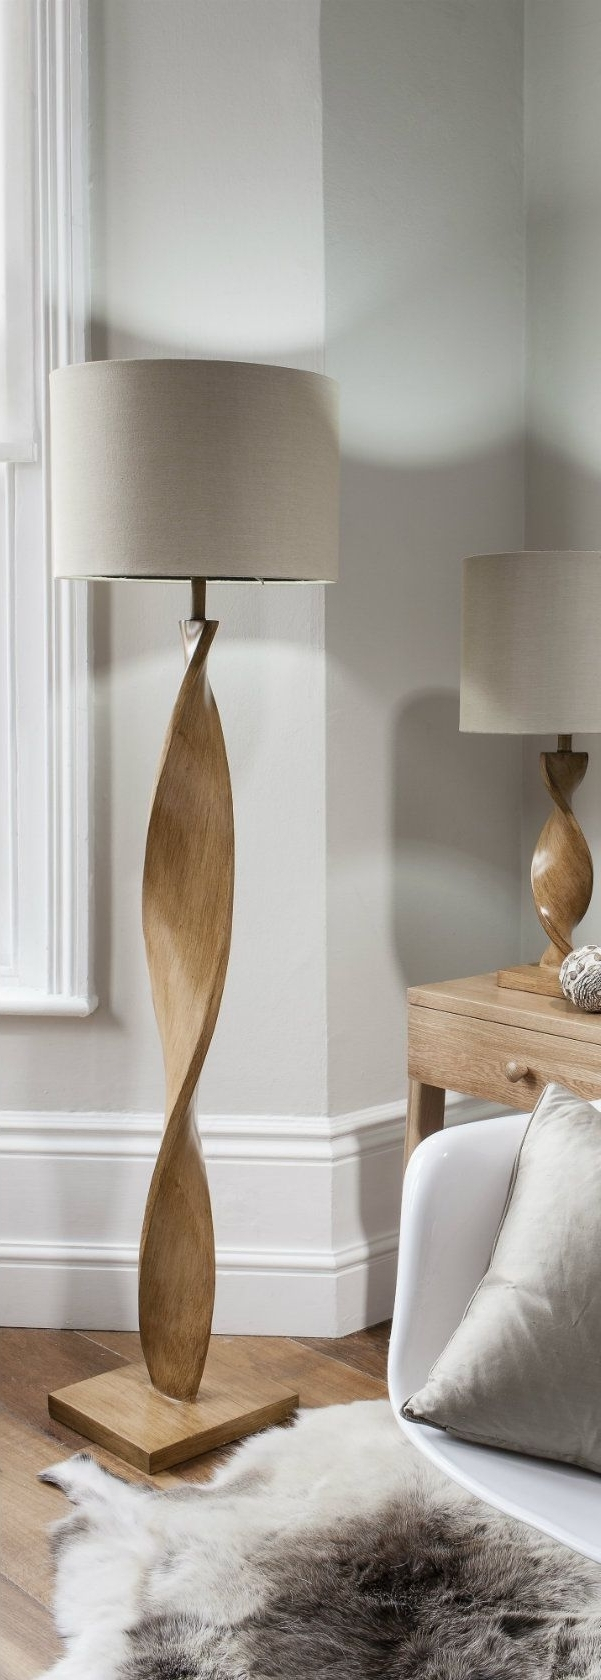 Living Room Lamp Ideas – Vitaminshoppe – Vitaminshoppe Intended For Well Liked Houzz Living Room Table Lamps (View 14 of 20)